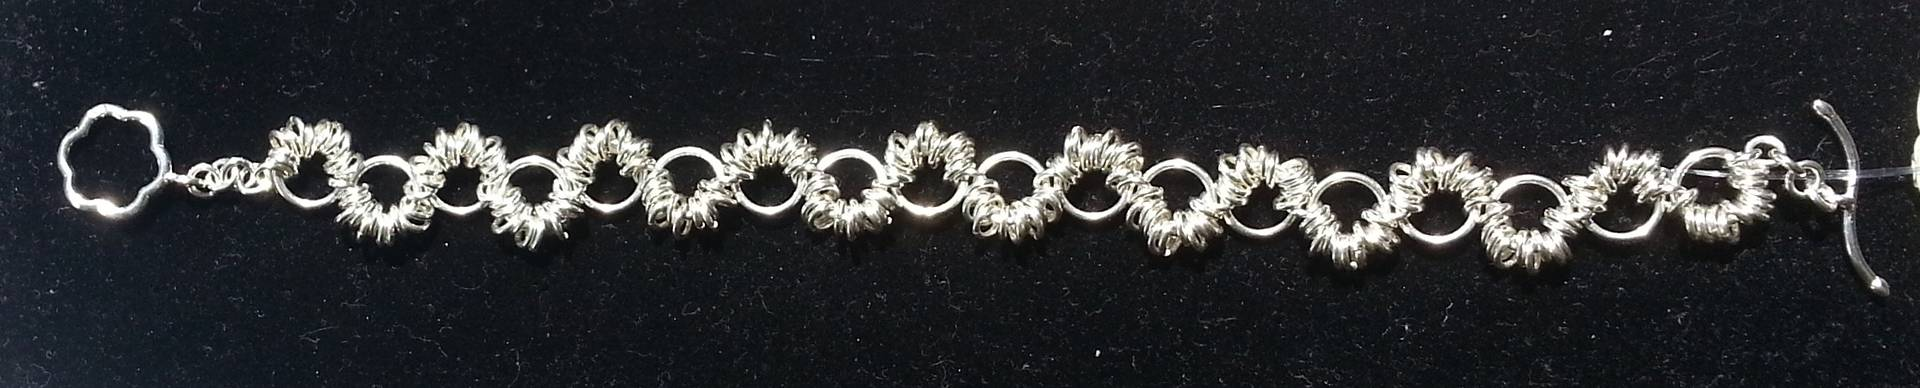 Sterling silver worm chainmaille bracelet  by Vicki Allesia